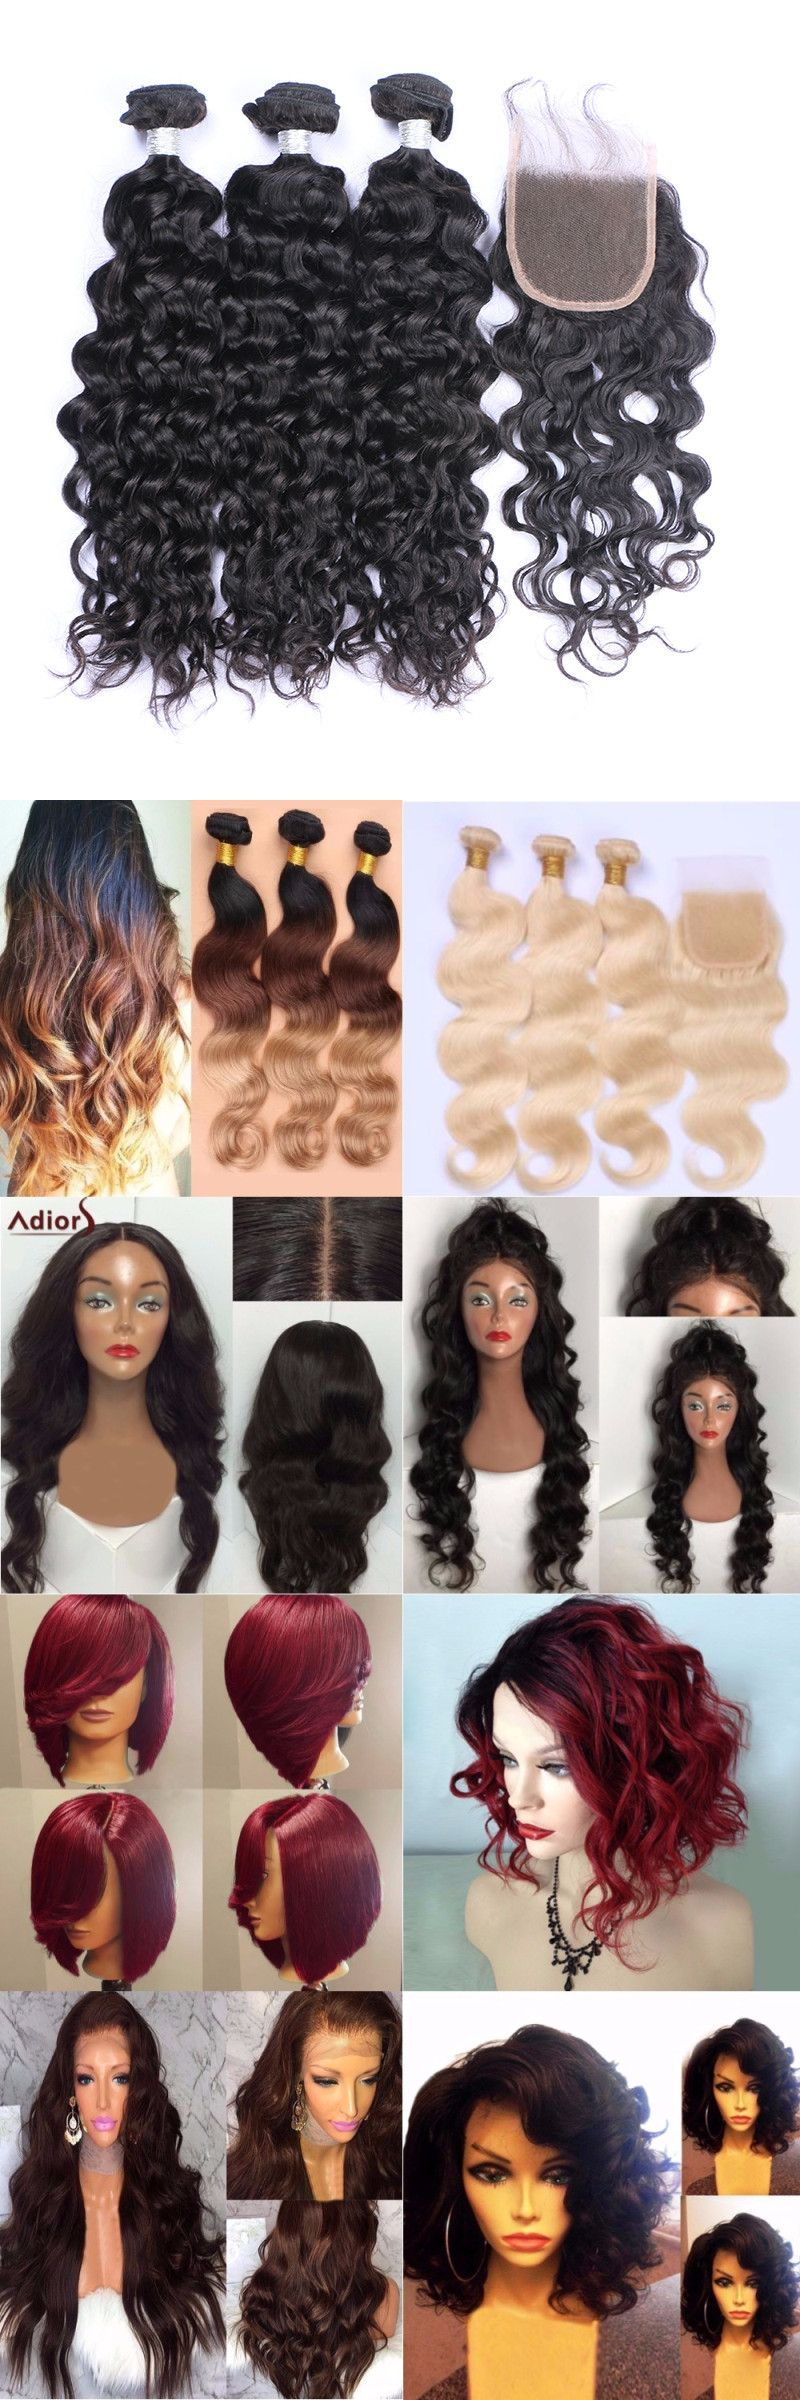 Freeshipping 500 Trendy Wigs For Your Hair Style Start From 2 99 Up To 65 Off Sammydress Com Wigs Hair Styles Short Human Hair Wigs